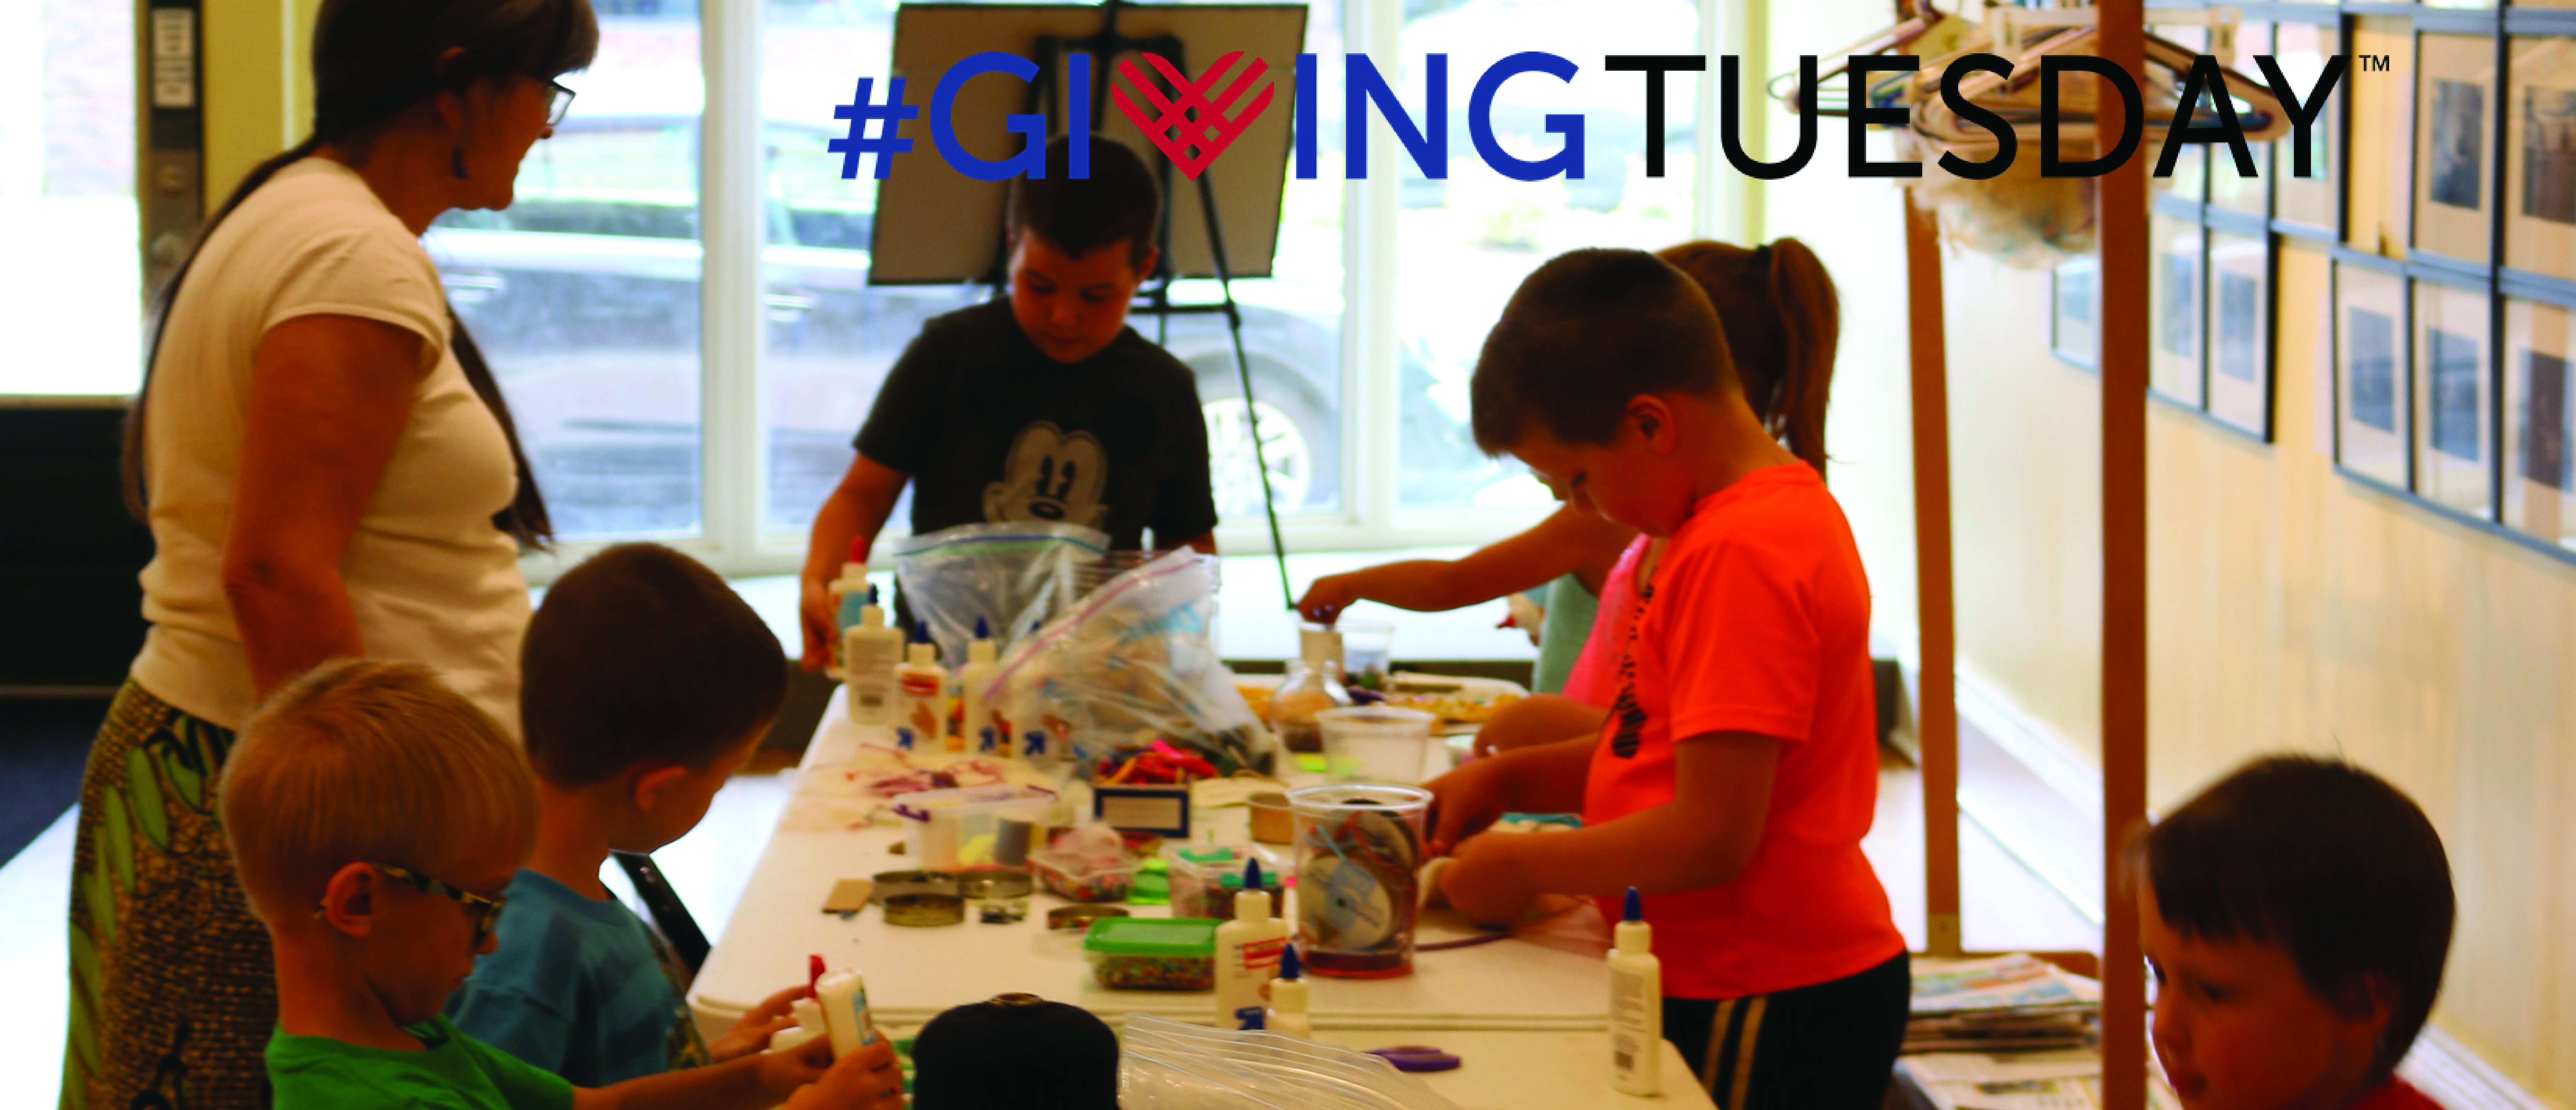 #GivingTuesday for Summer Art Camp!